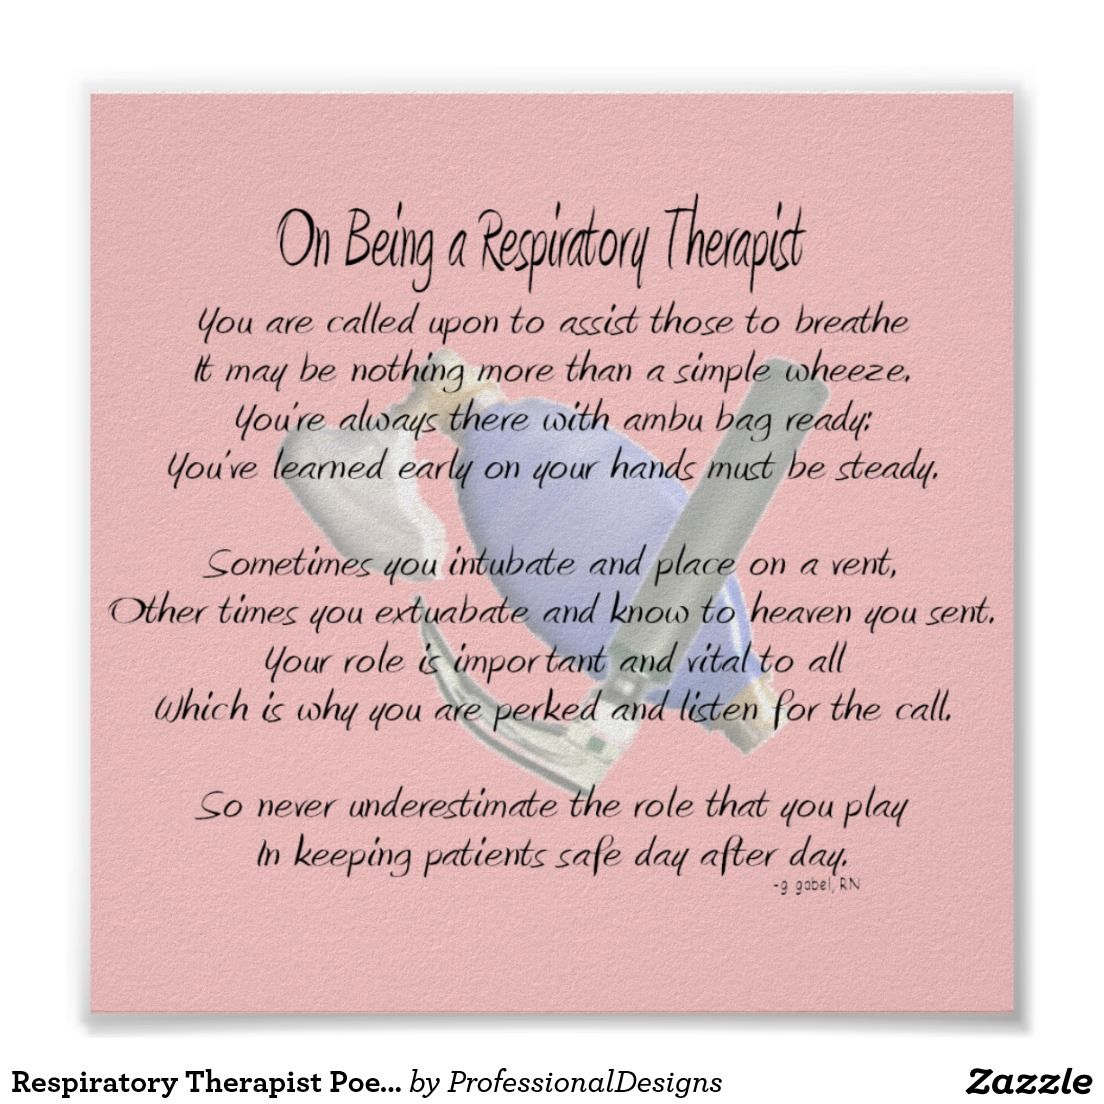 Respiratory Therapist Poem Poster Poster Zazzle Com Respiratory Therapy Quotes Respiratory Therapist Respiratory Therapist Humor